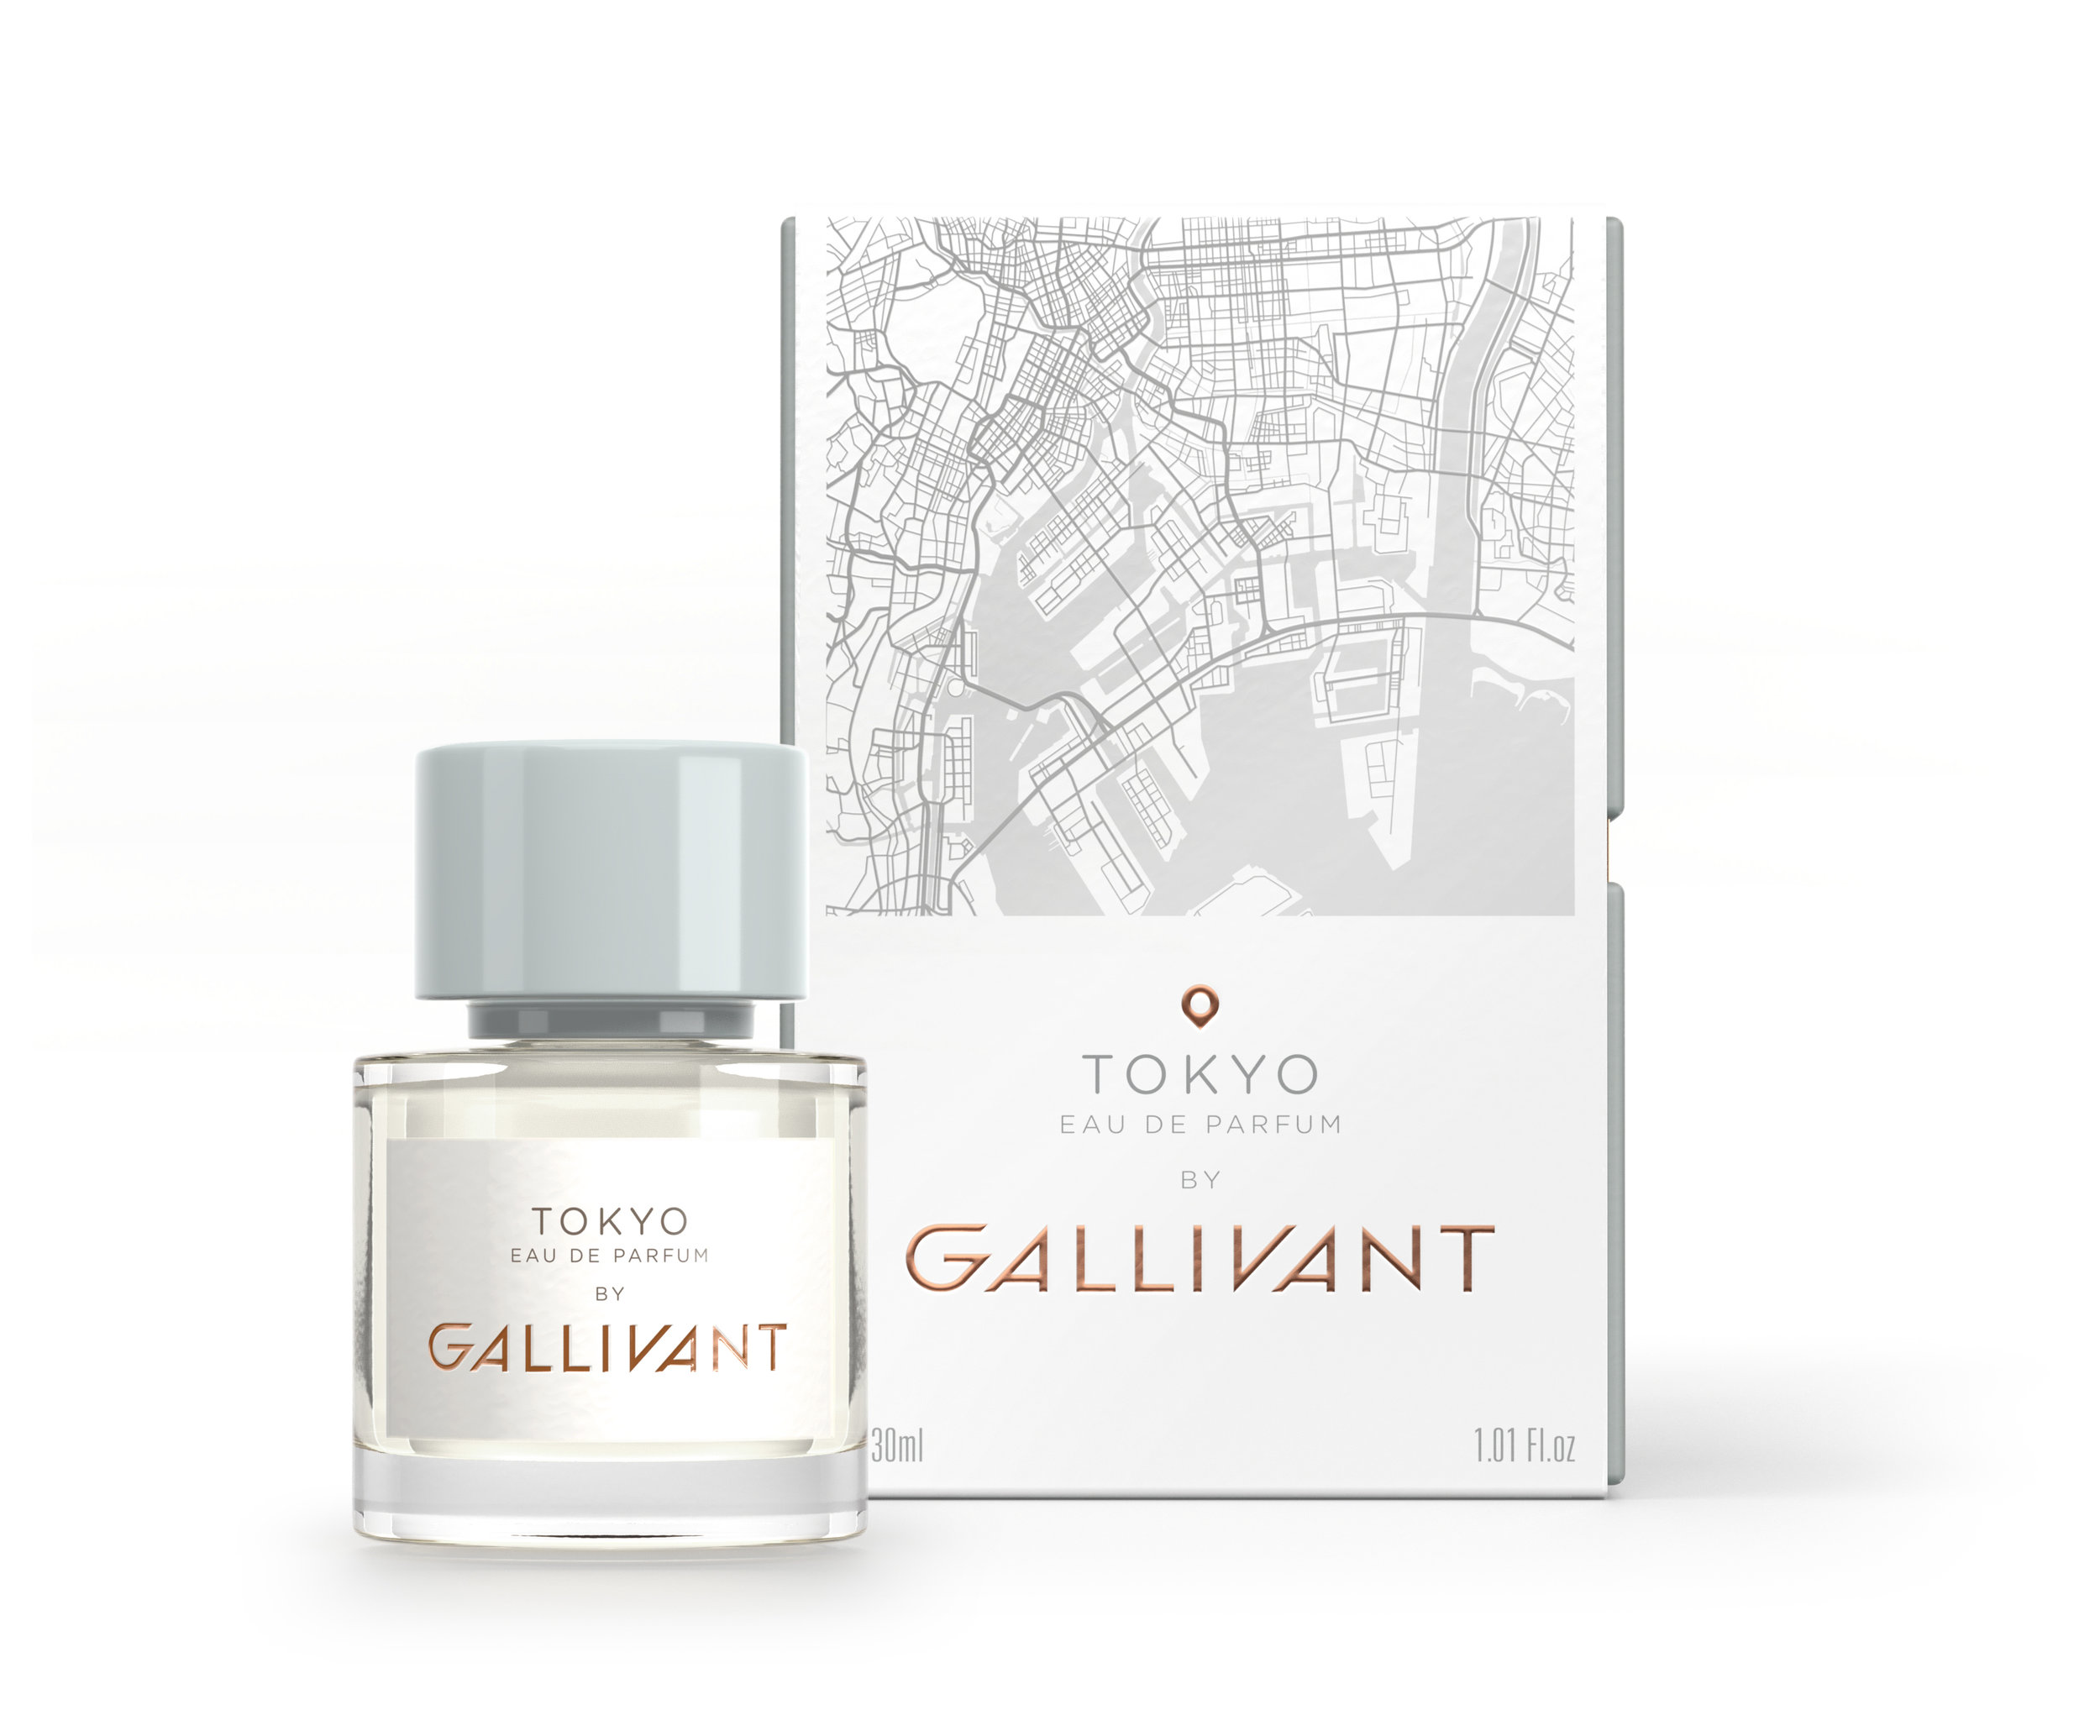 Tokyo by GALLIVANT - bottle + pack, facing.jpg